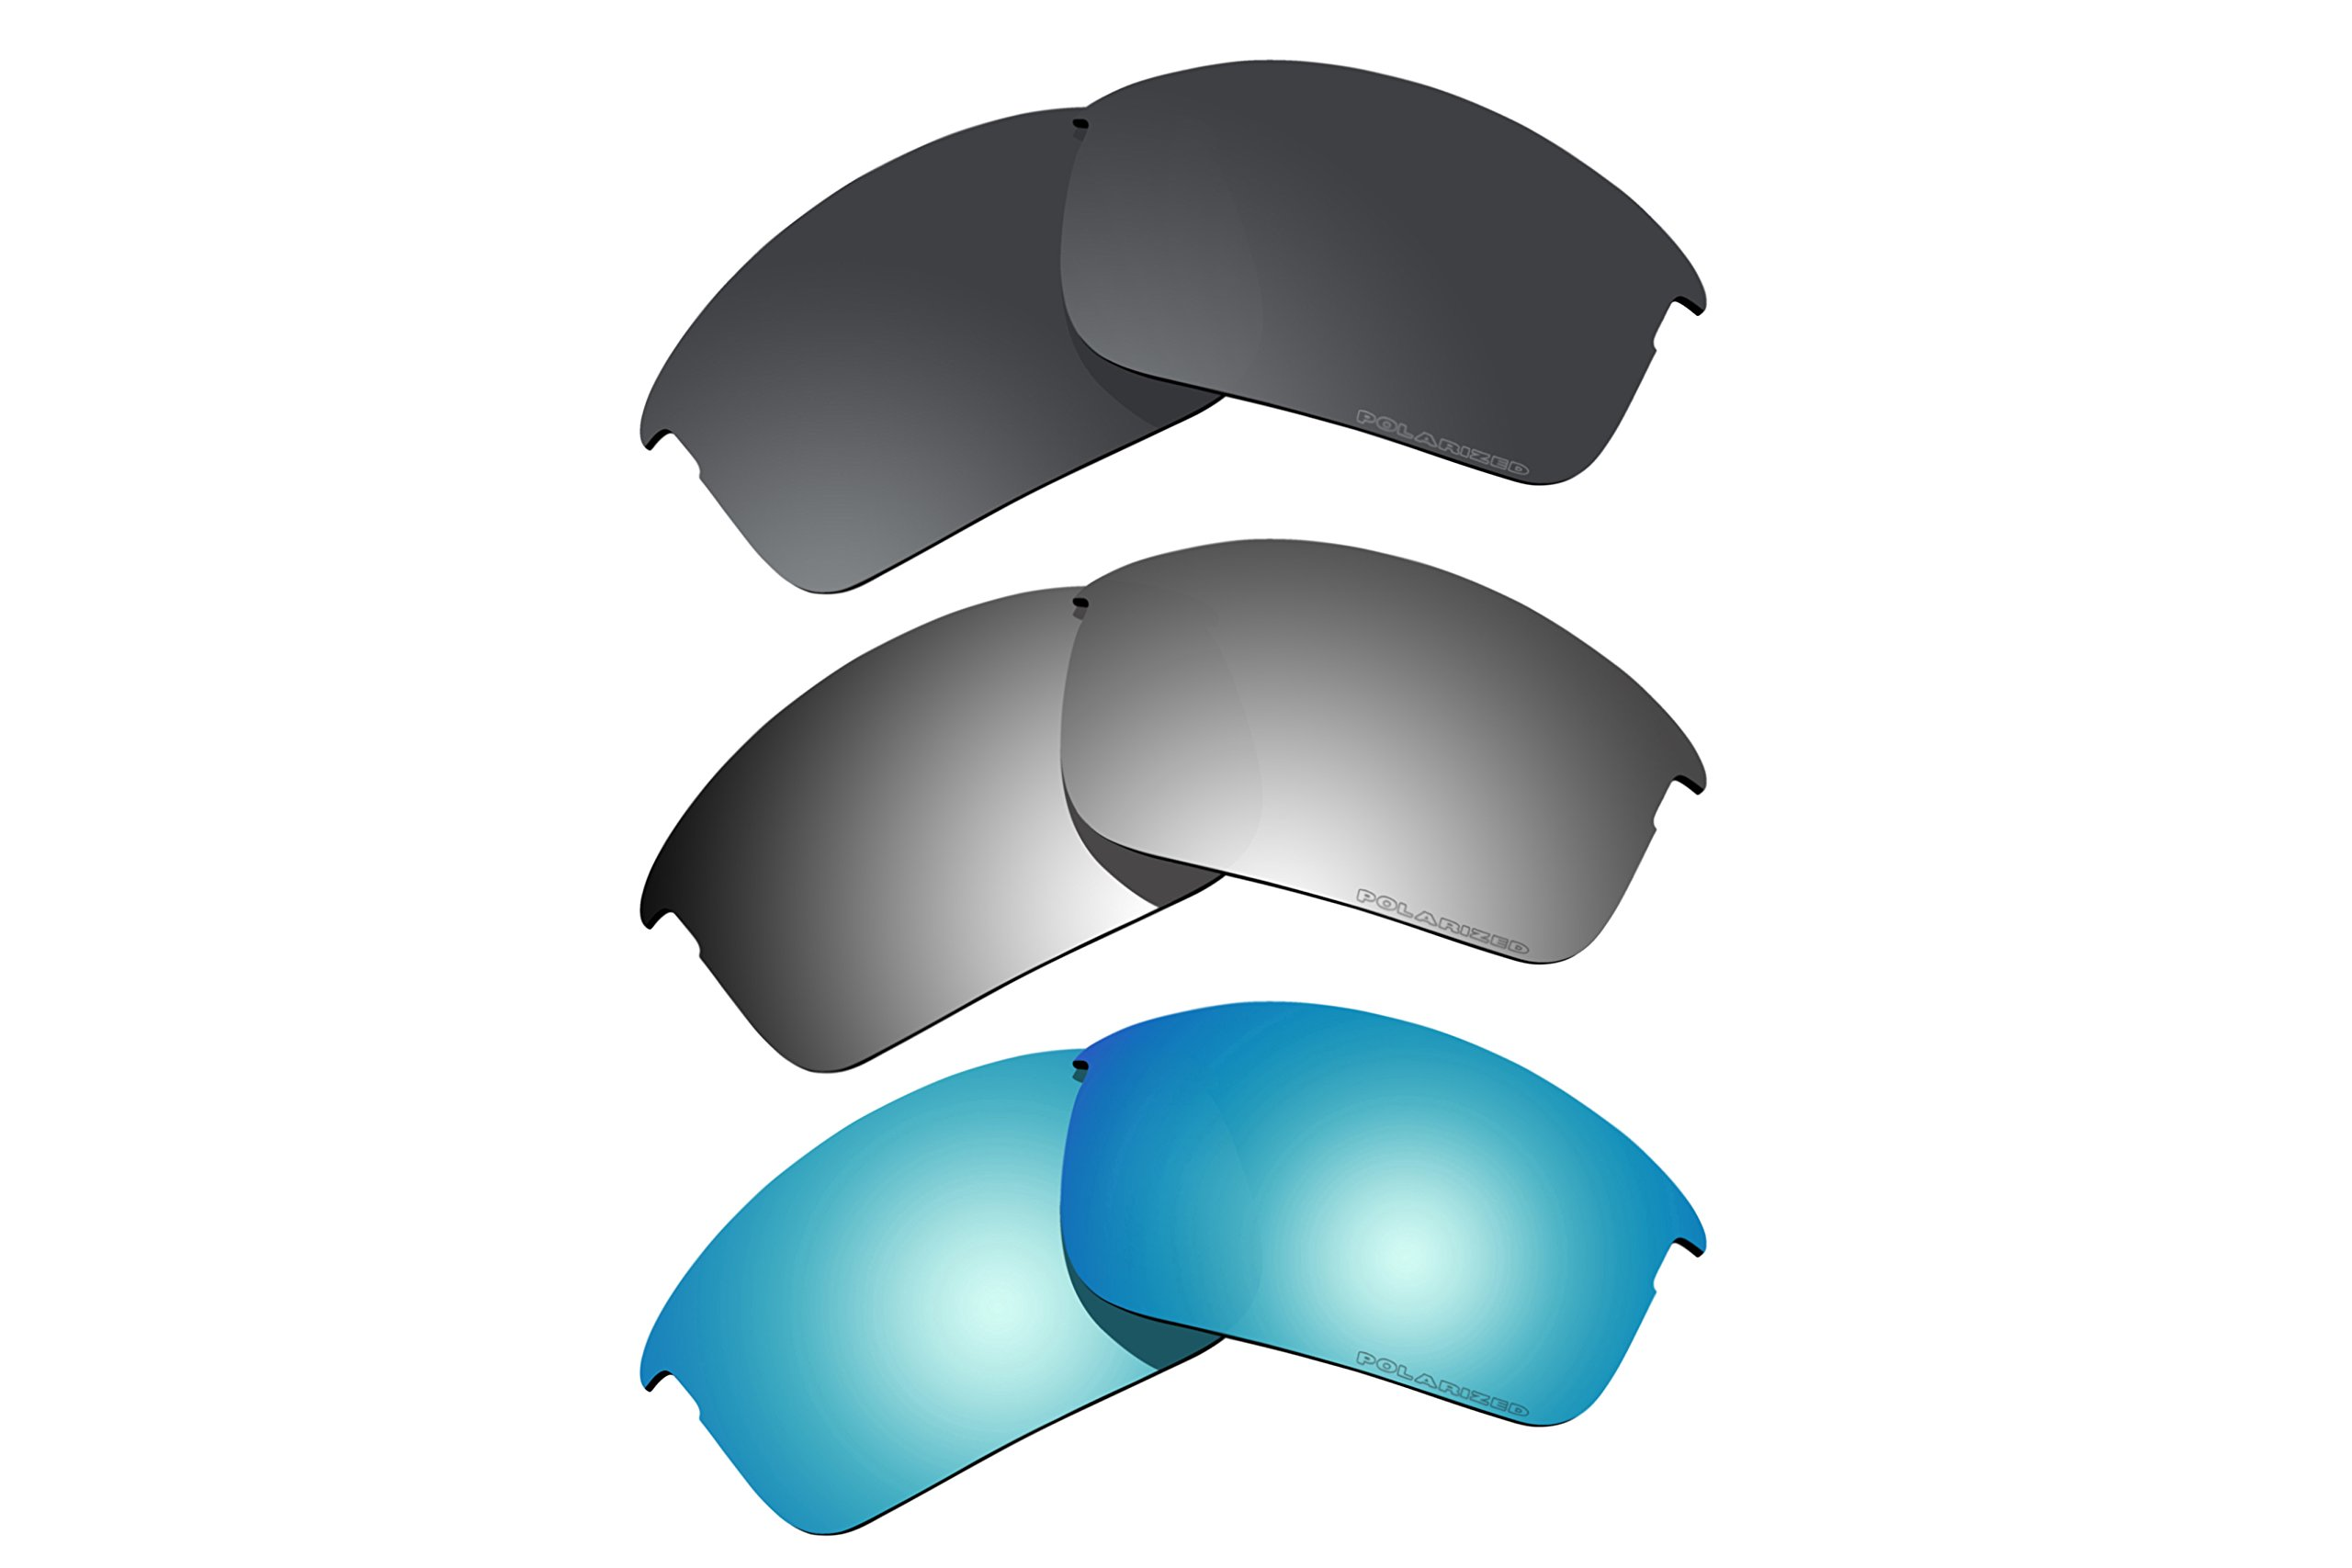 3 Pairs Polarized Lenses Replacement for Oakley Bottle Rocket Sunglasses R9